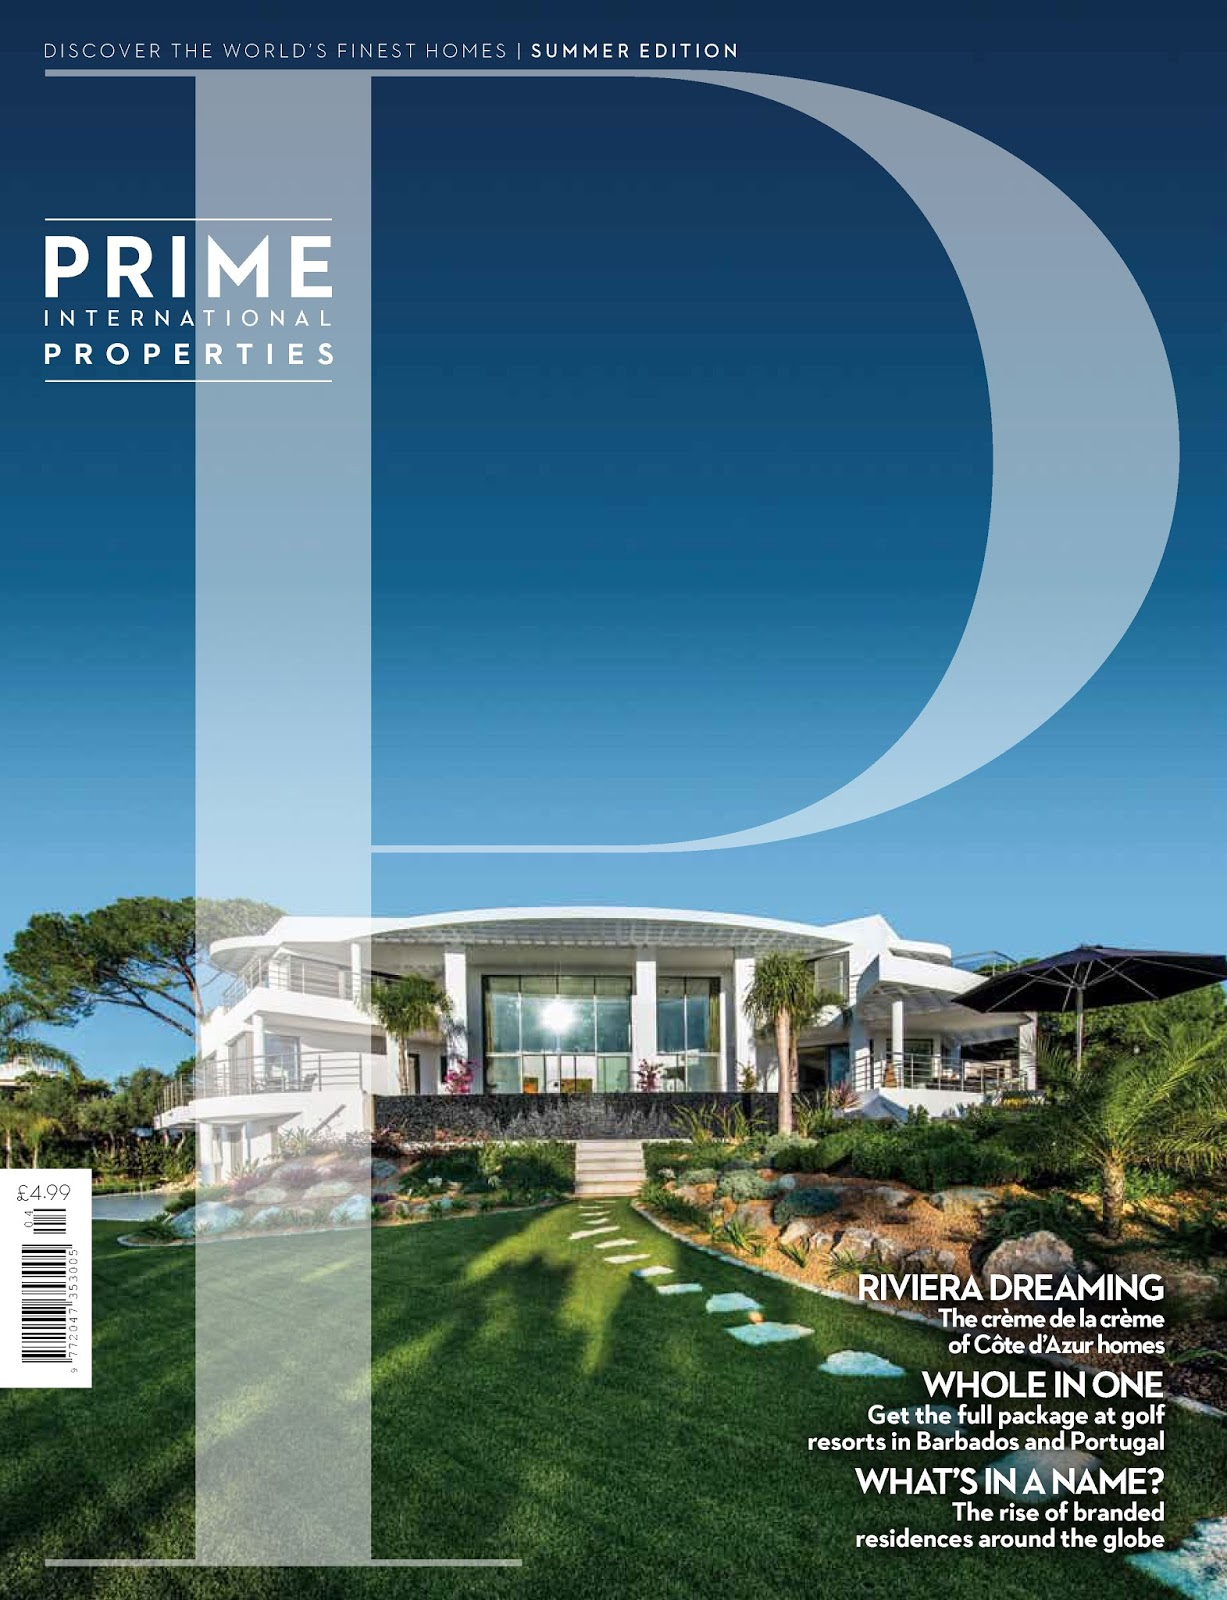 International property magazine -  About The New Magazine Available From Http Www Holdthefrontpage Co Uk 2016 News Regional Publisher Launches New Magazine After Employee Contest